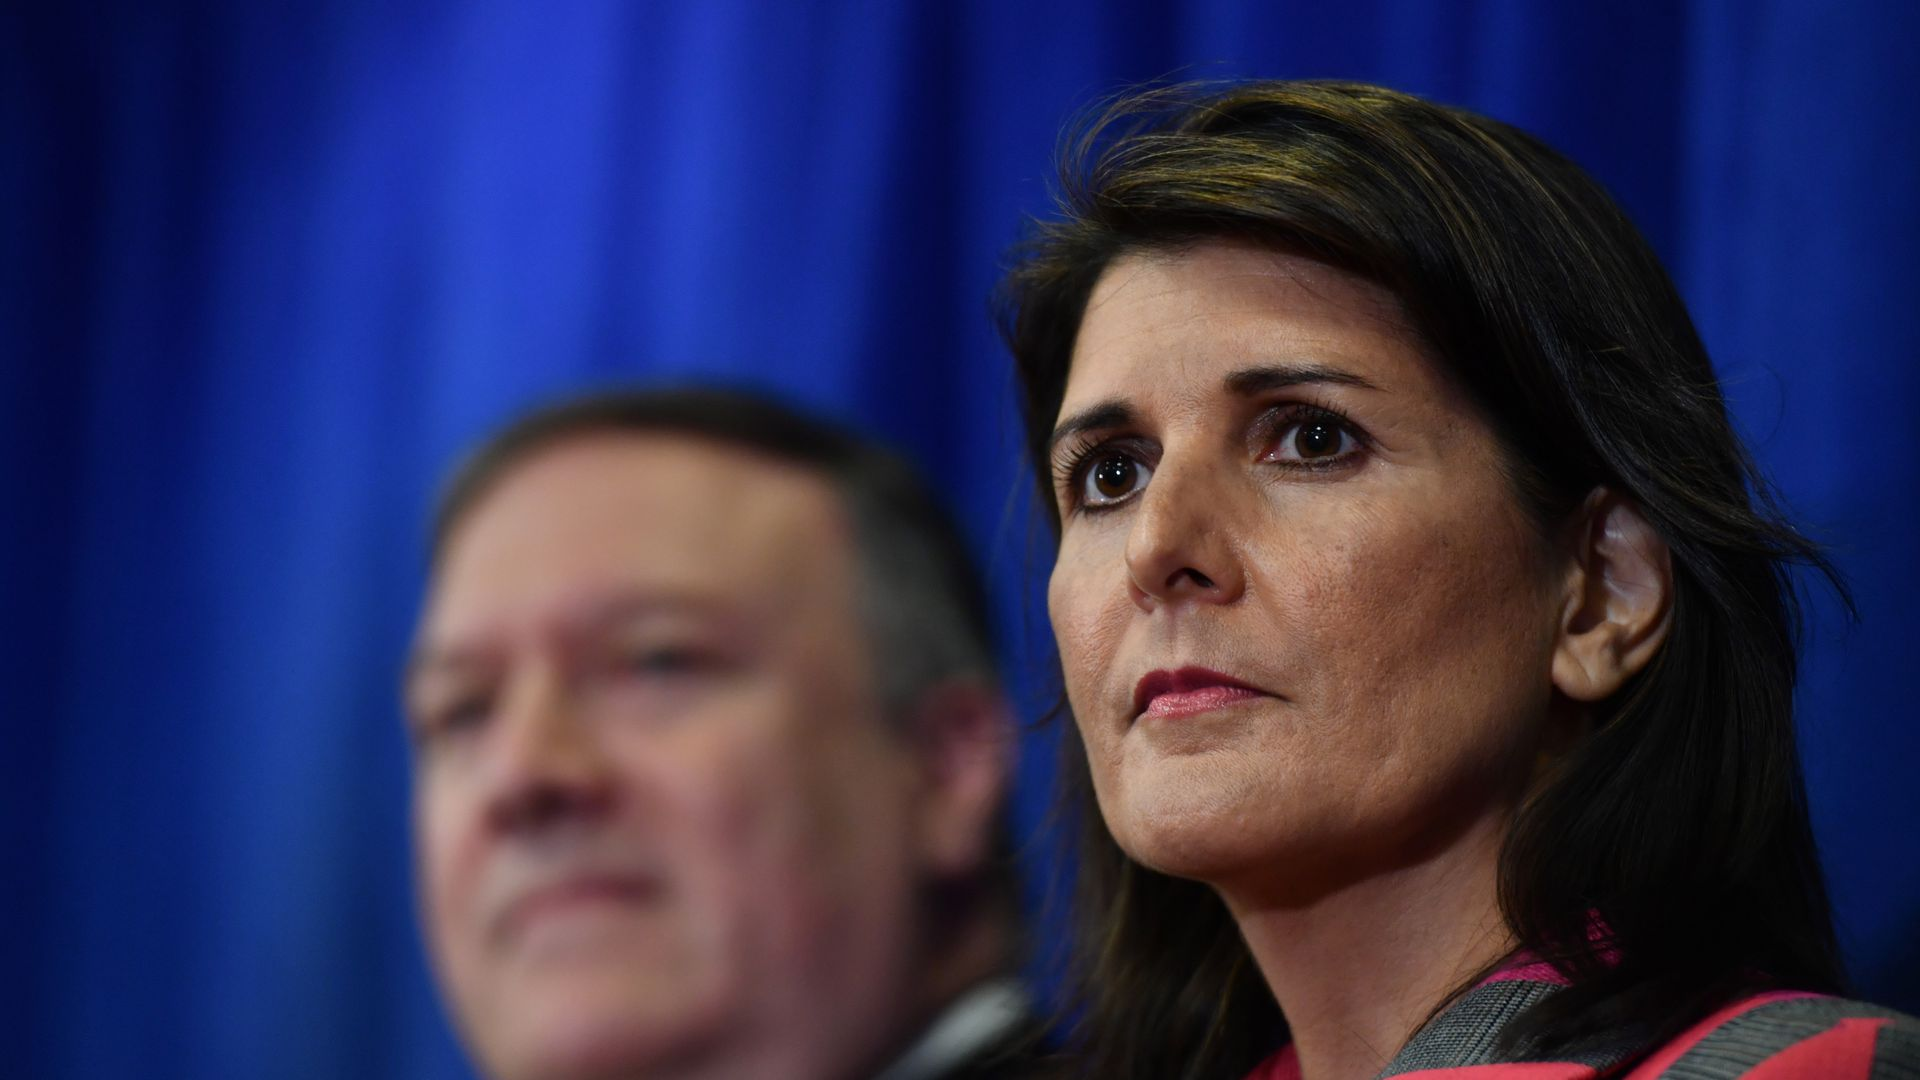 Nikki Haley pictured at a press conference